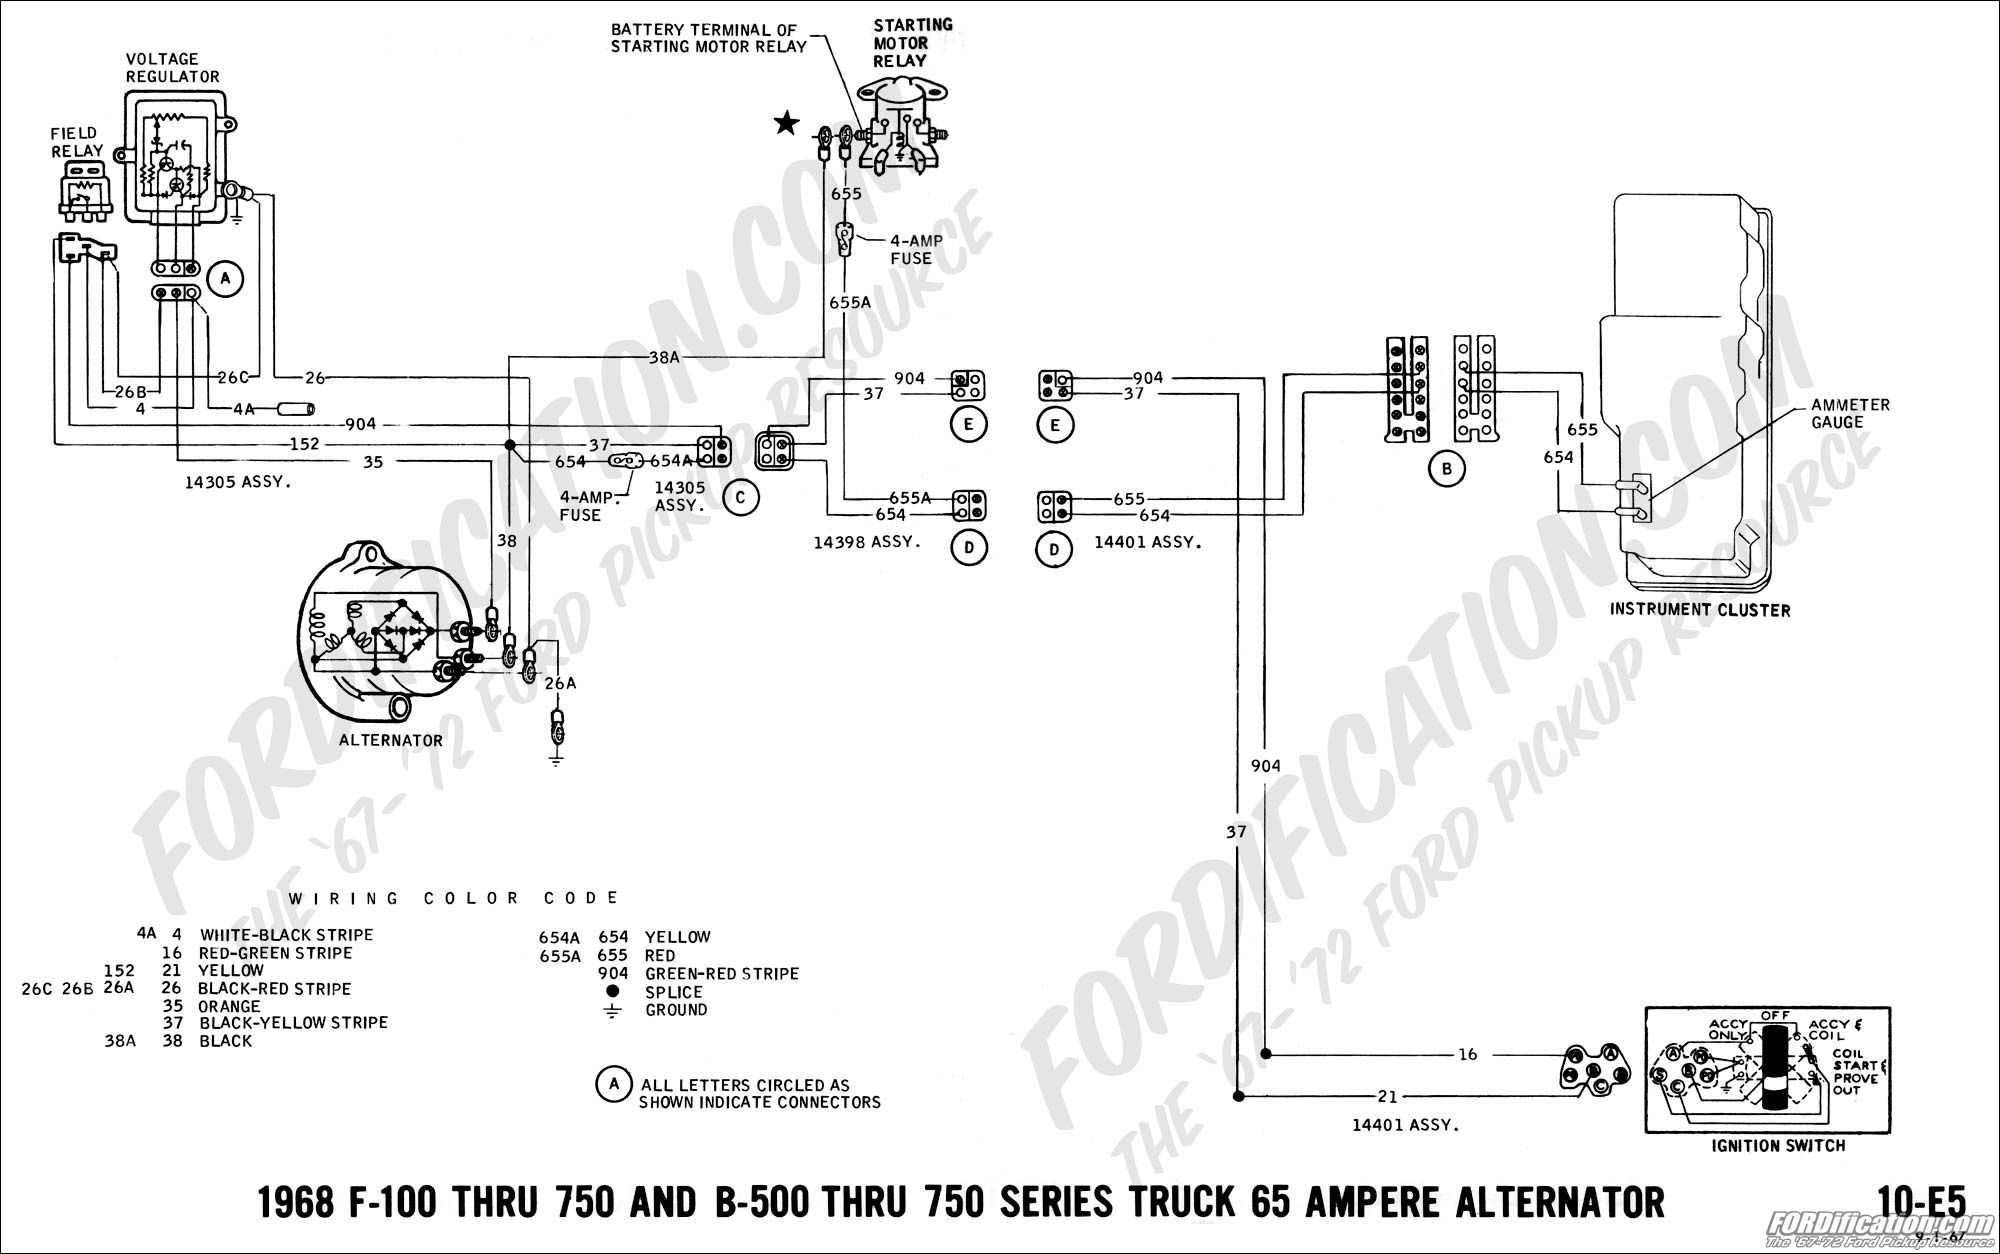 68 ford alternator wiring diagram 76 ford f150 diagram drawings ford truck trailer wiring diagram [ 2000 x 1254 Pixel ]